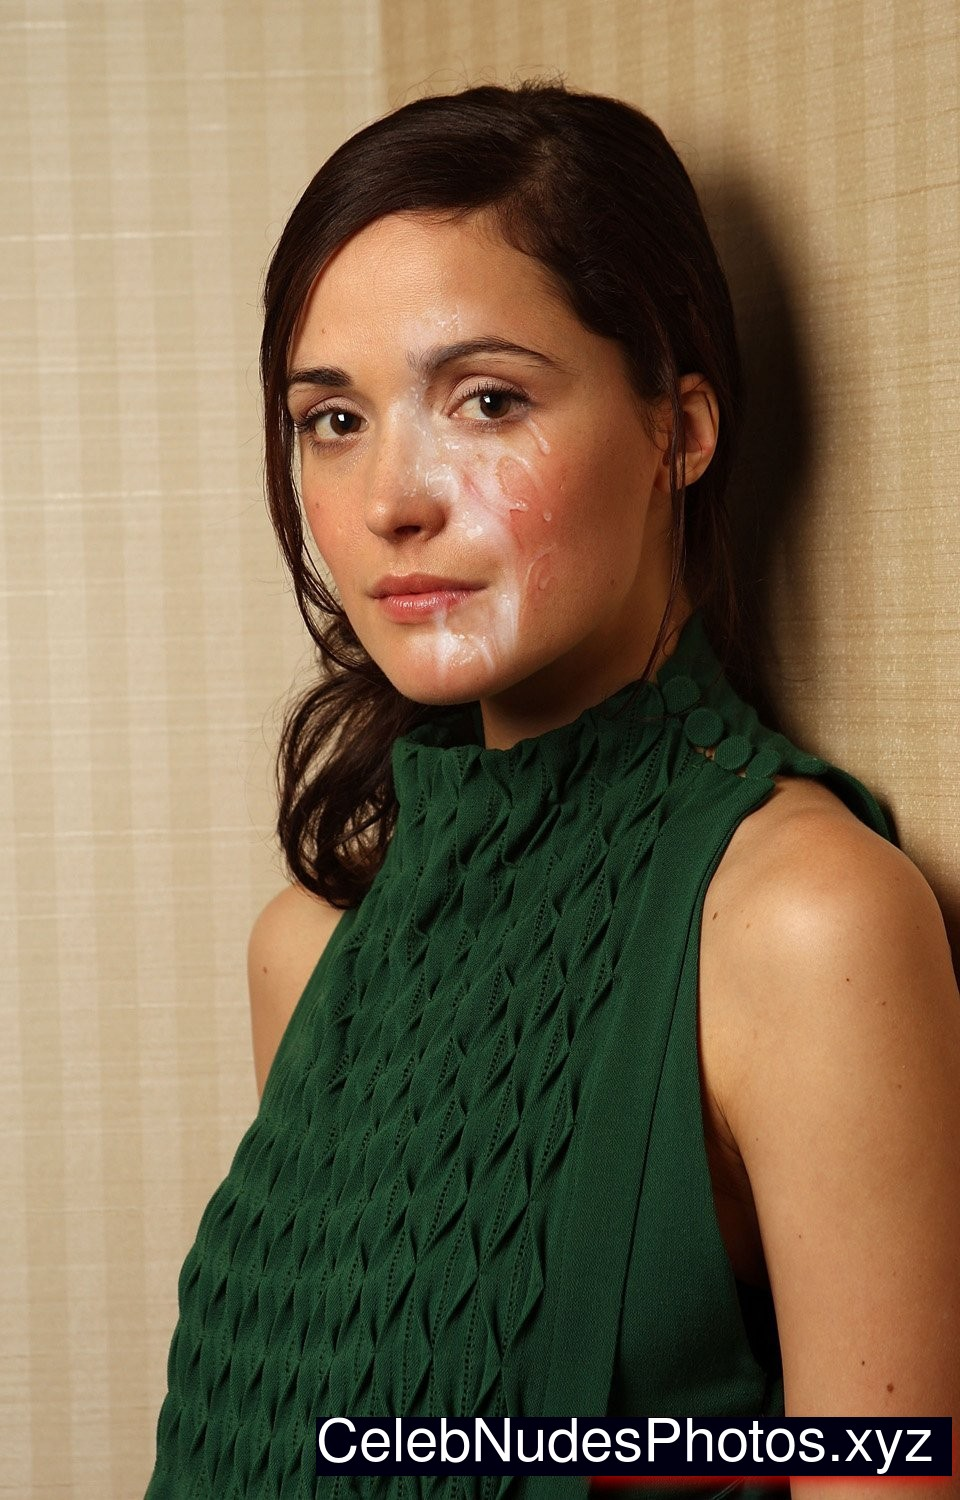 Rose Byrne celebrities nude